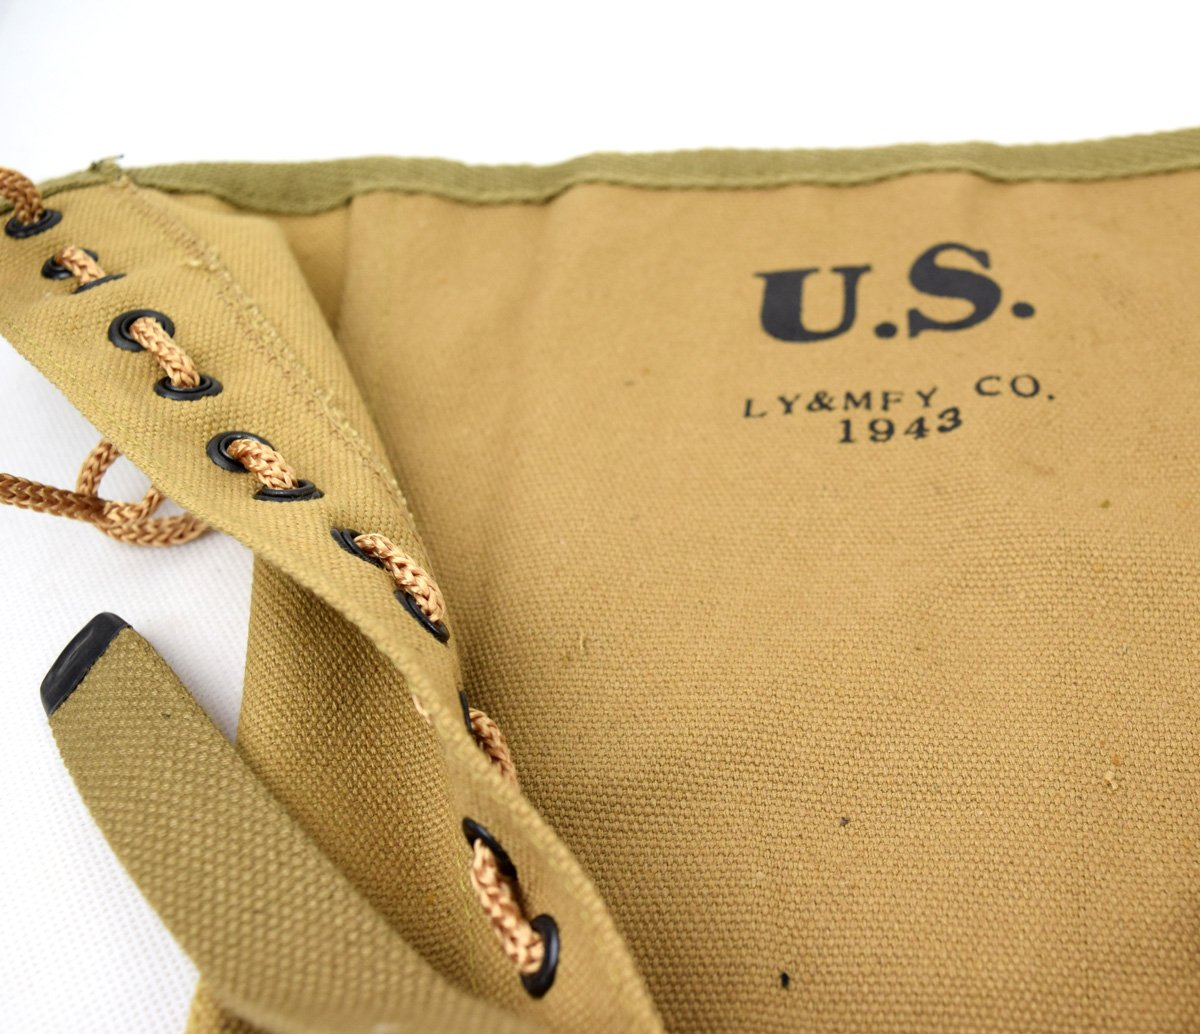 Replica WWII US Canvas Pants Gaiter Leggings Puttee by Chengxiang (Image #8)